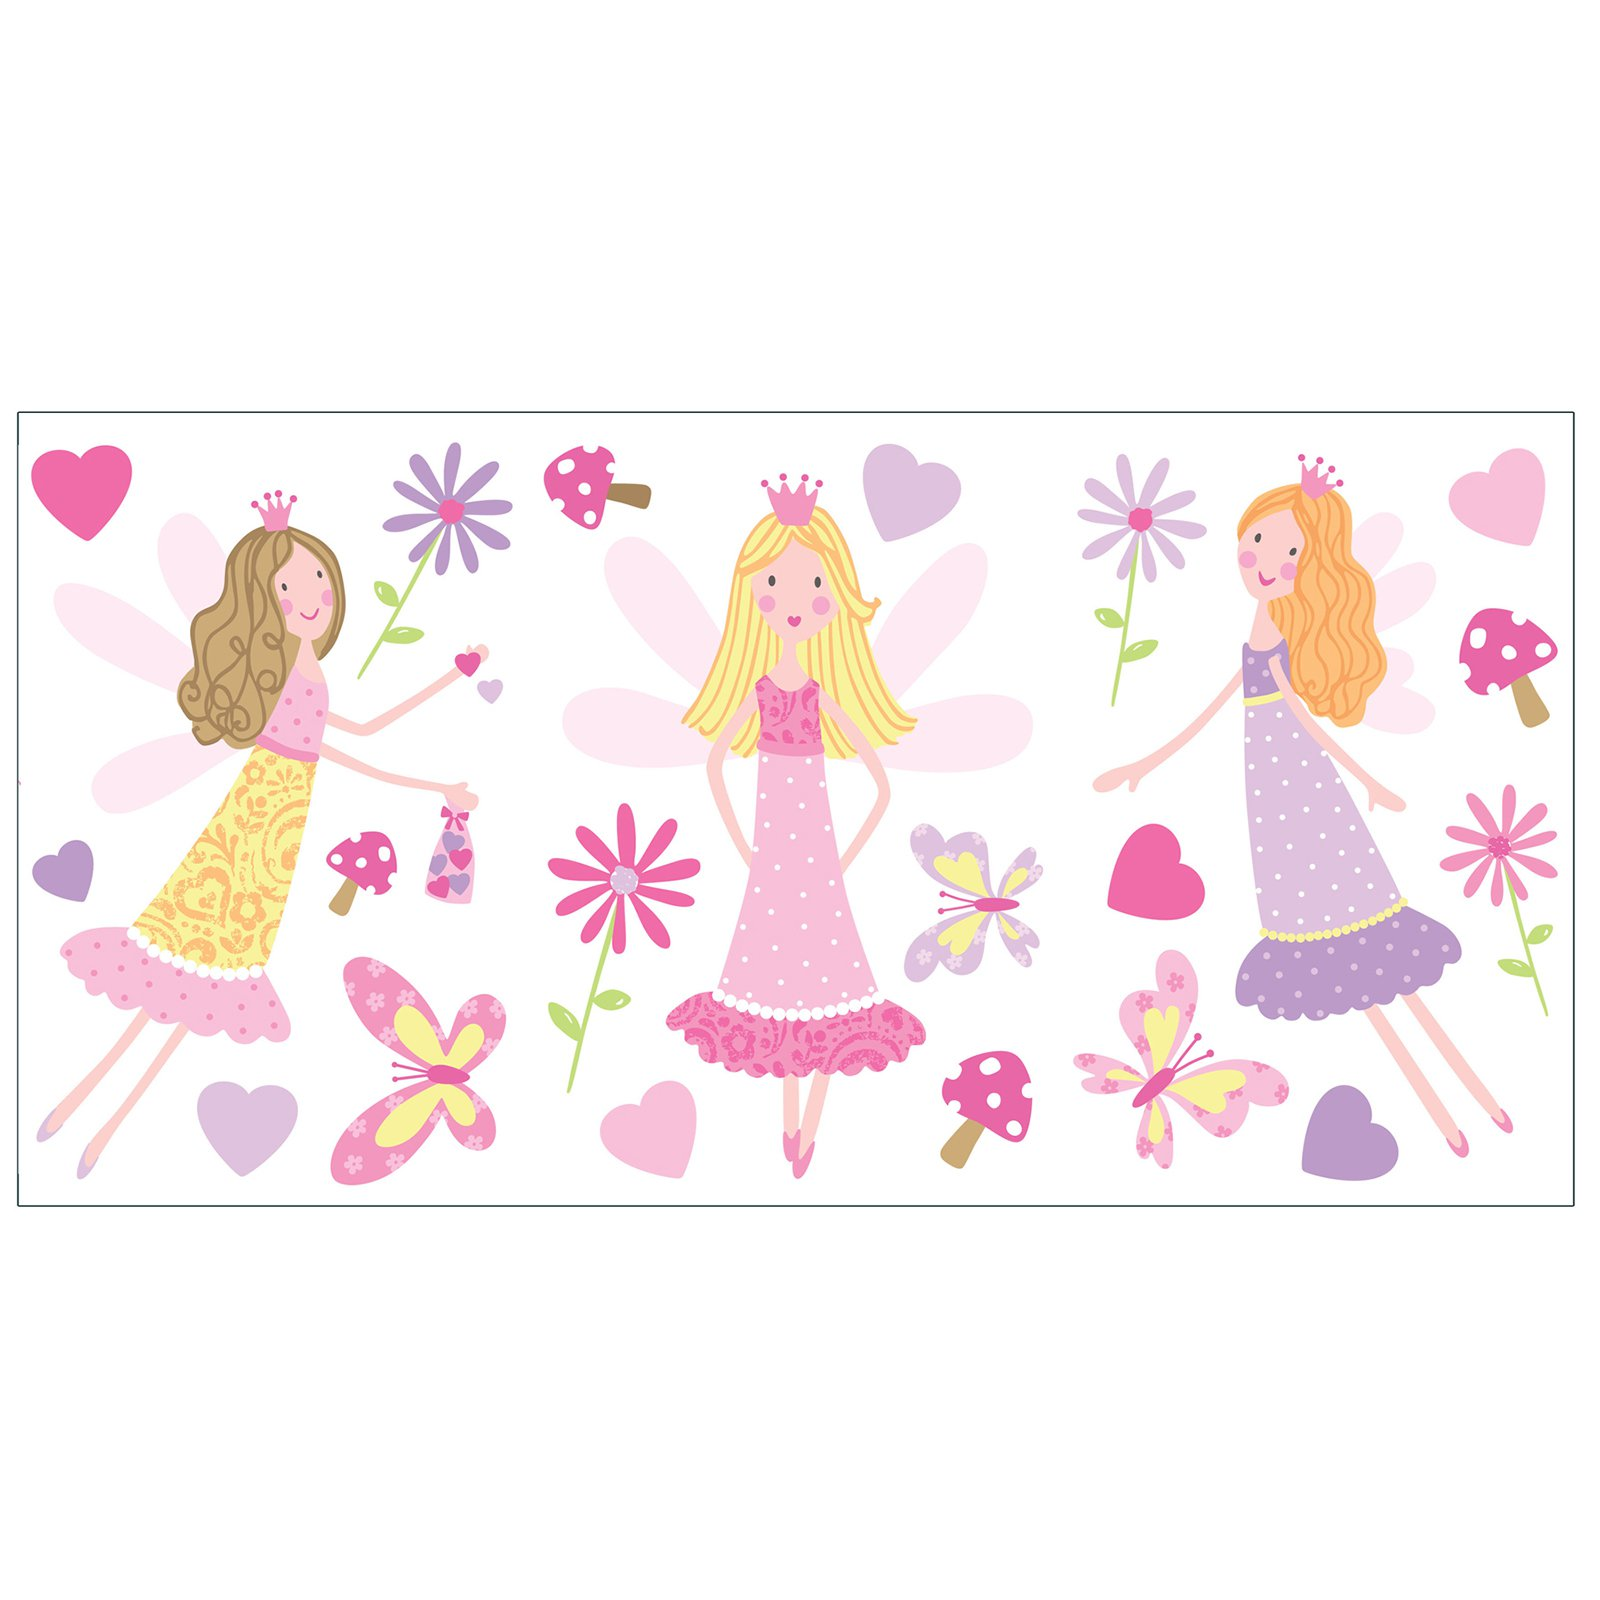 Fun4Walls Fairy Garden Wall Stickers - Set of 44